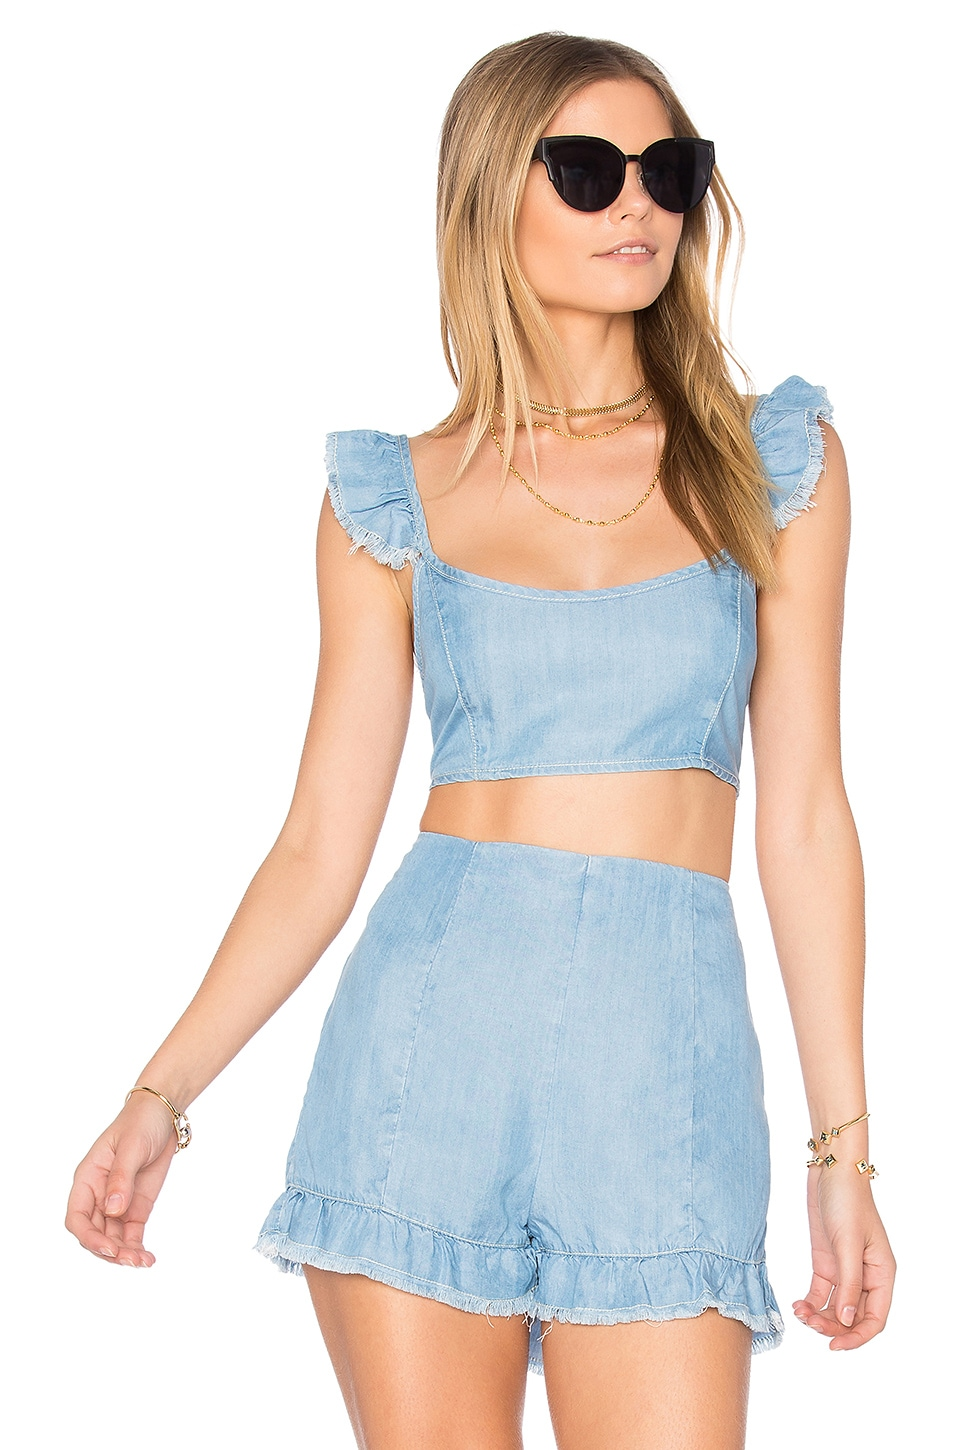 MINKPINK Bella Denim Bralet in Light Blue